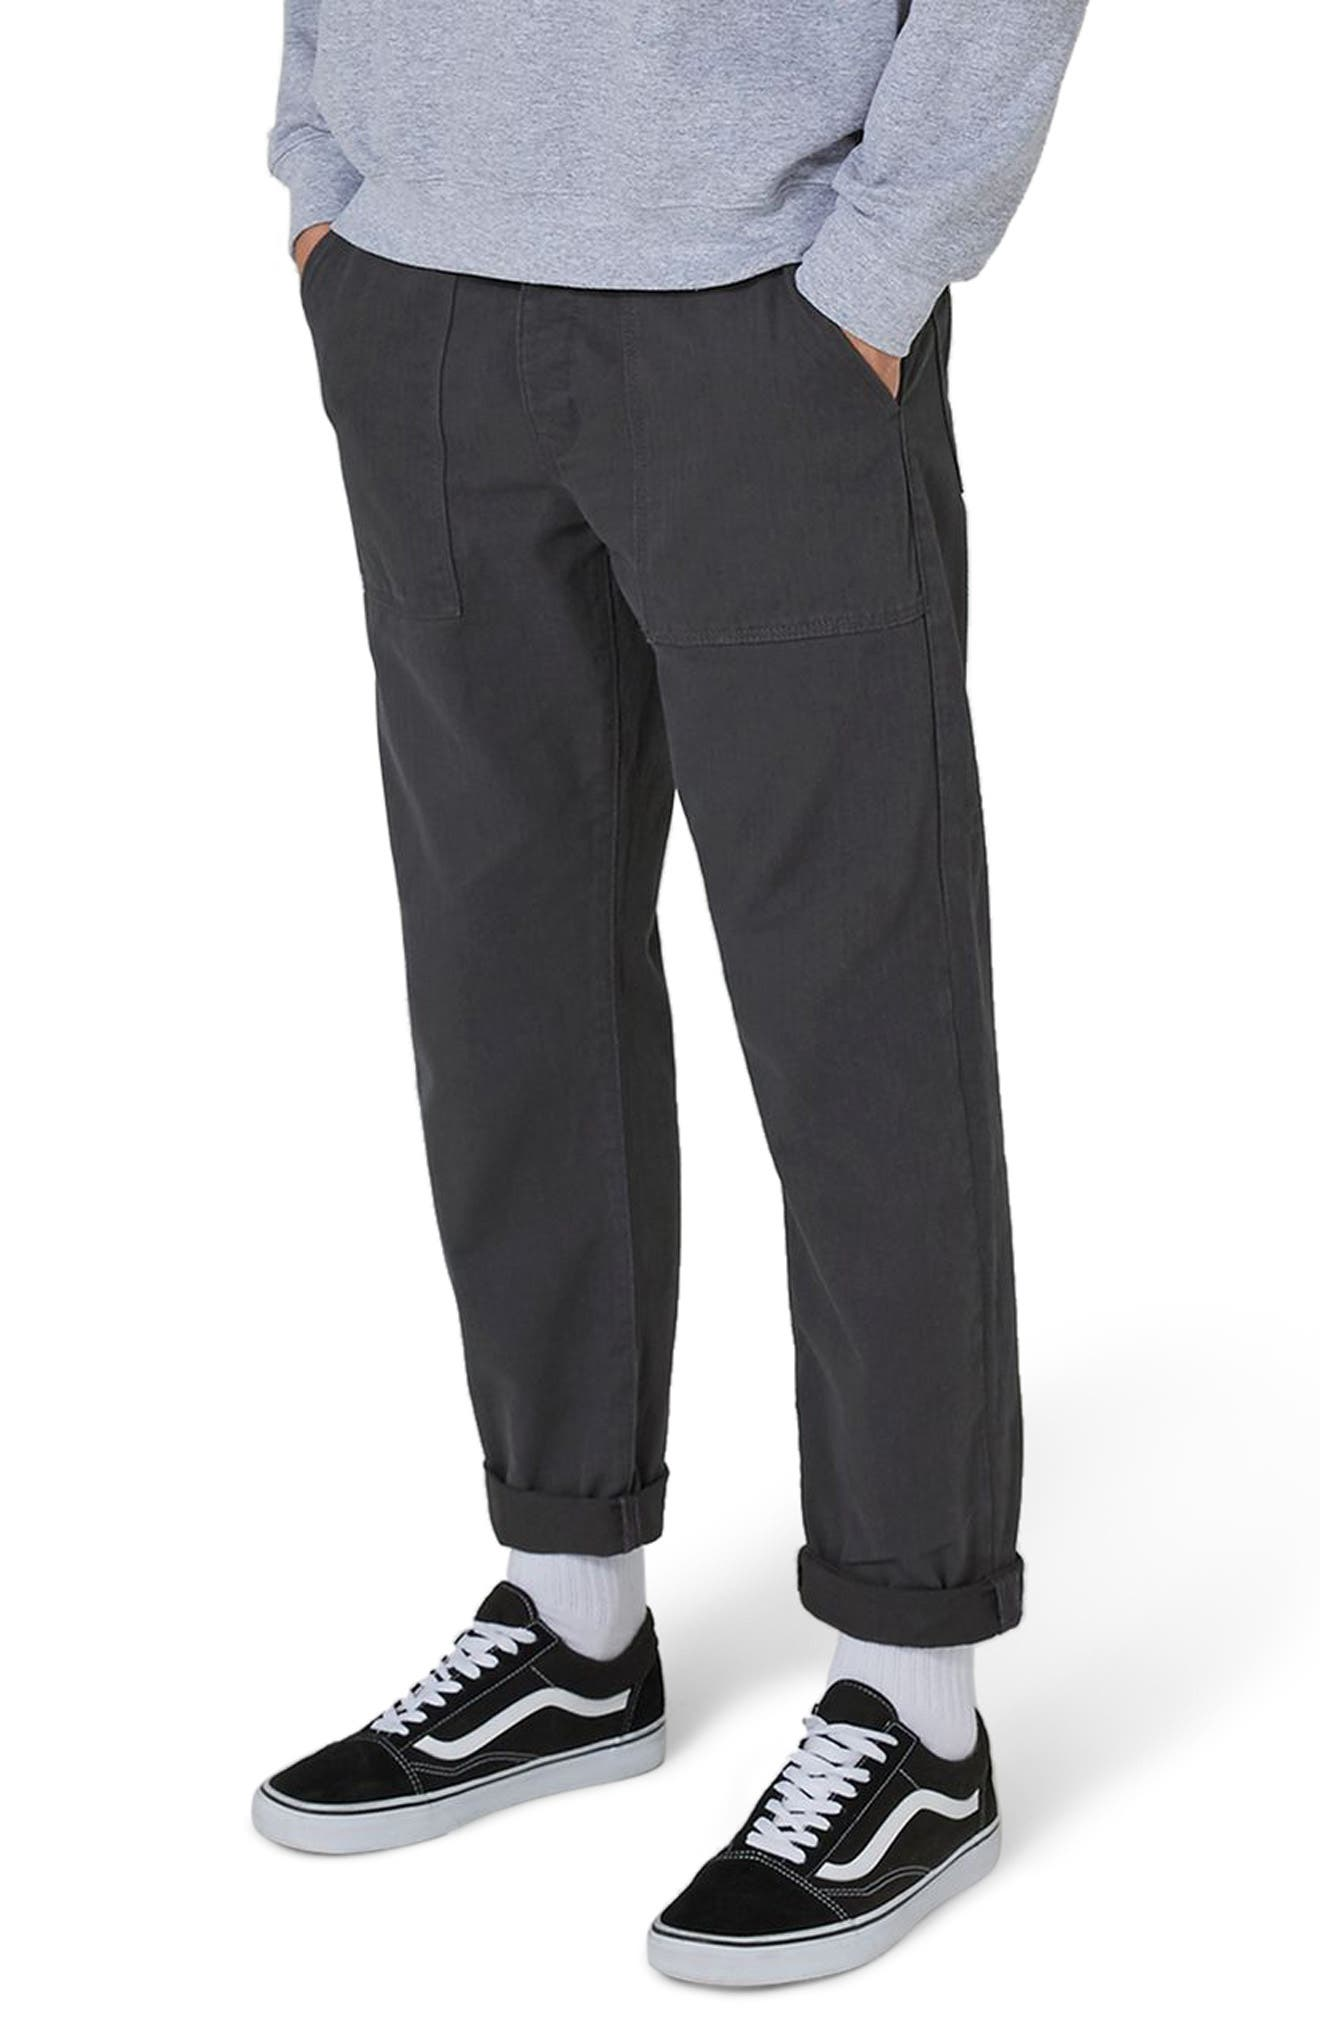 Alternate Image 1 Selected - Topman Original Fit Herringbone Trousers